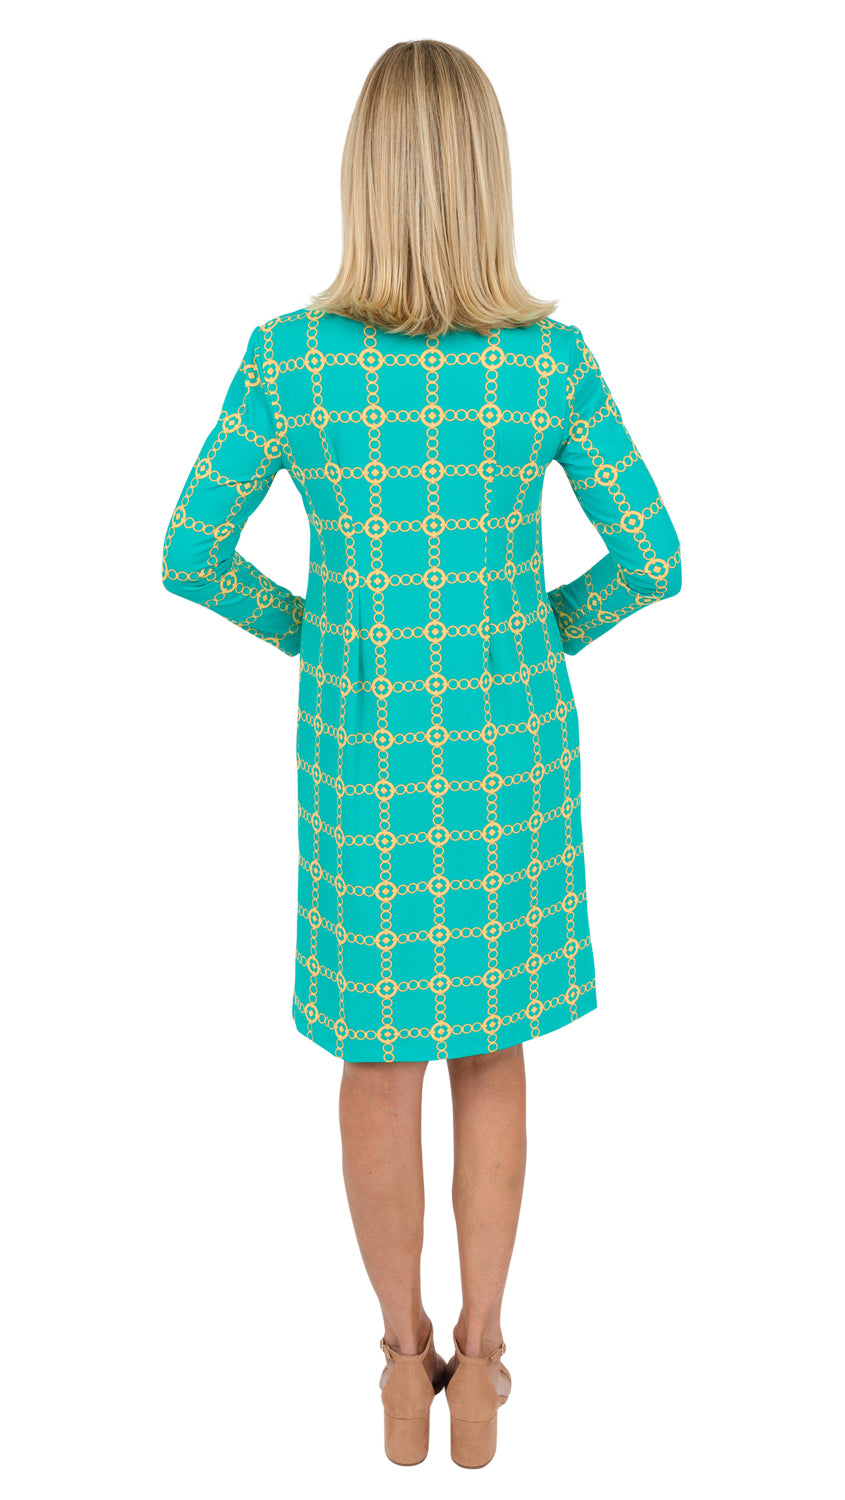 Marina Dress 3/4 Sleeve XLength - Green/Gold Chain FINAL SALE